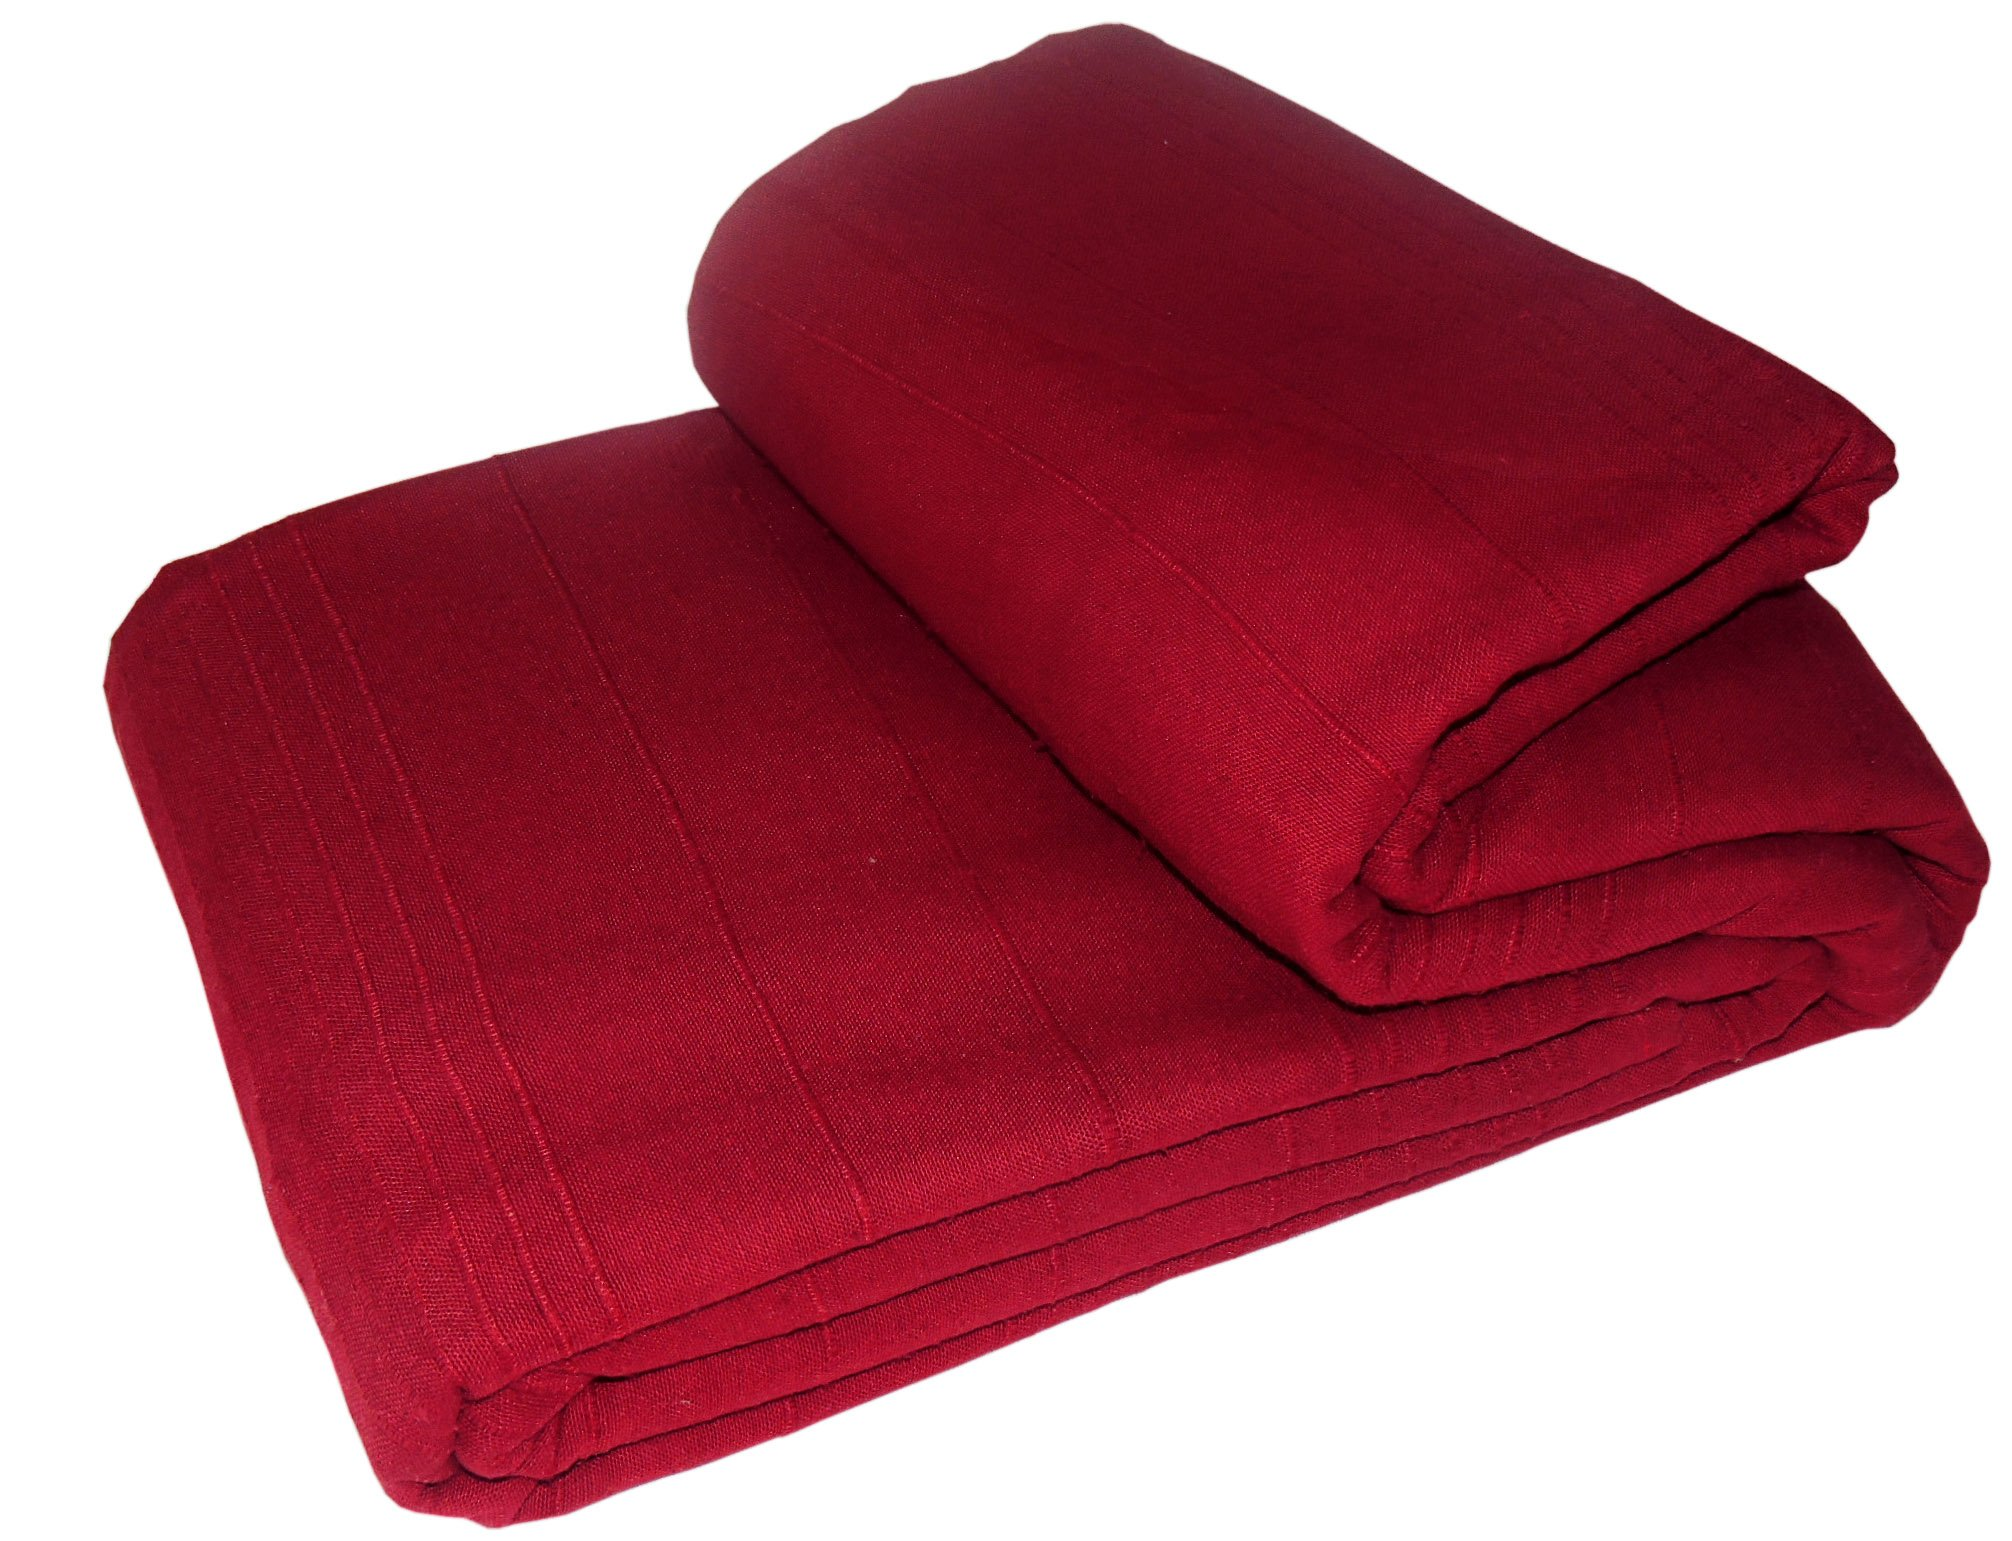 Red Throws For Sofas: Amazon.co.uk